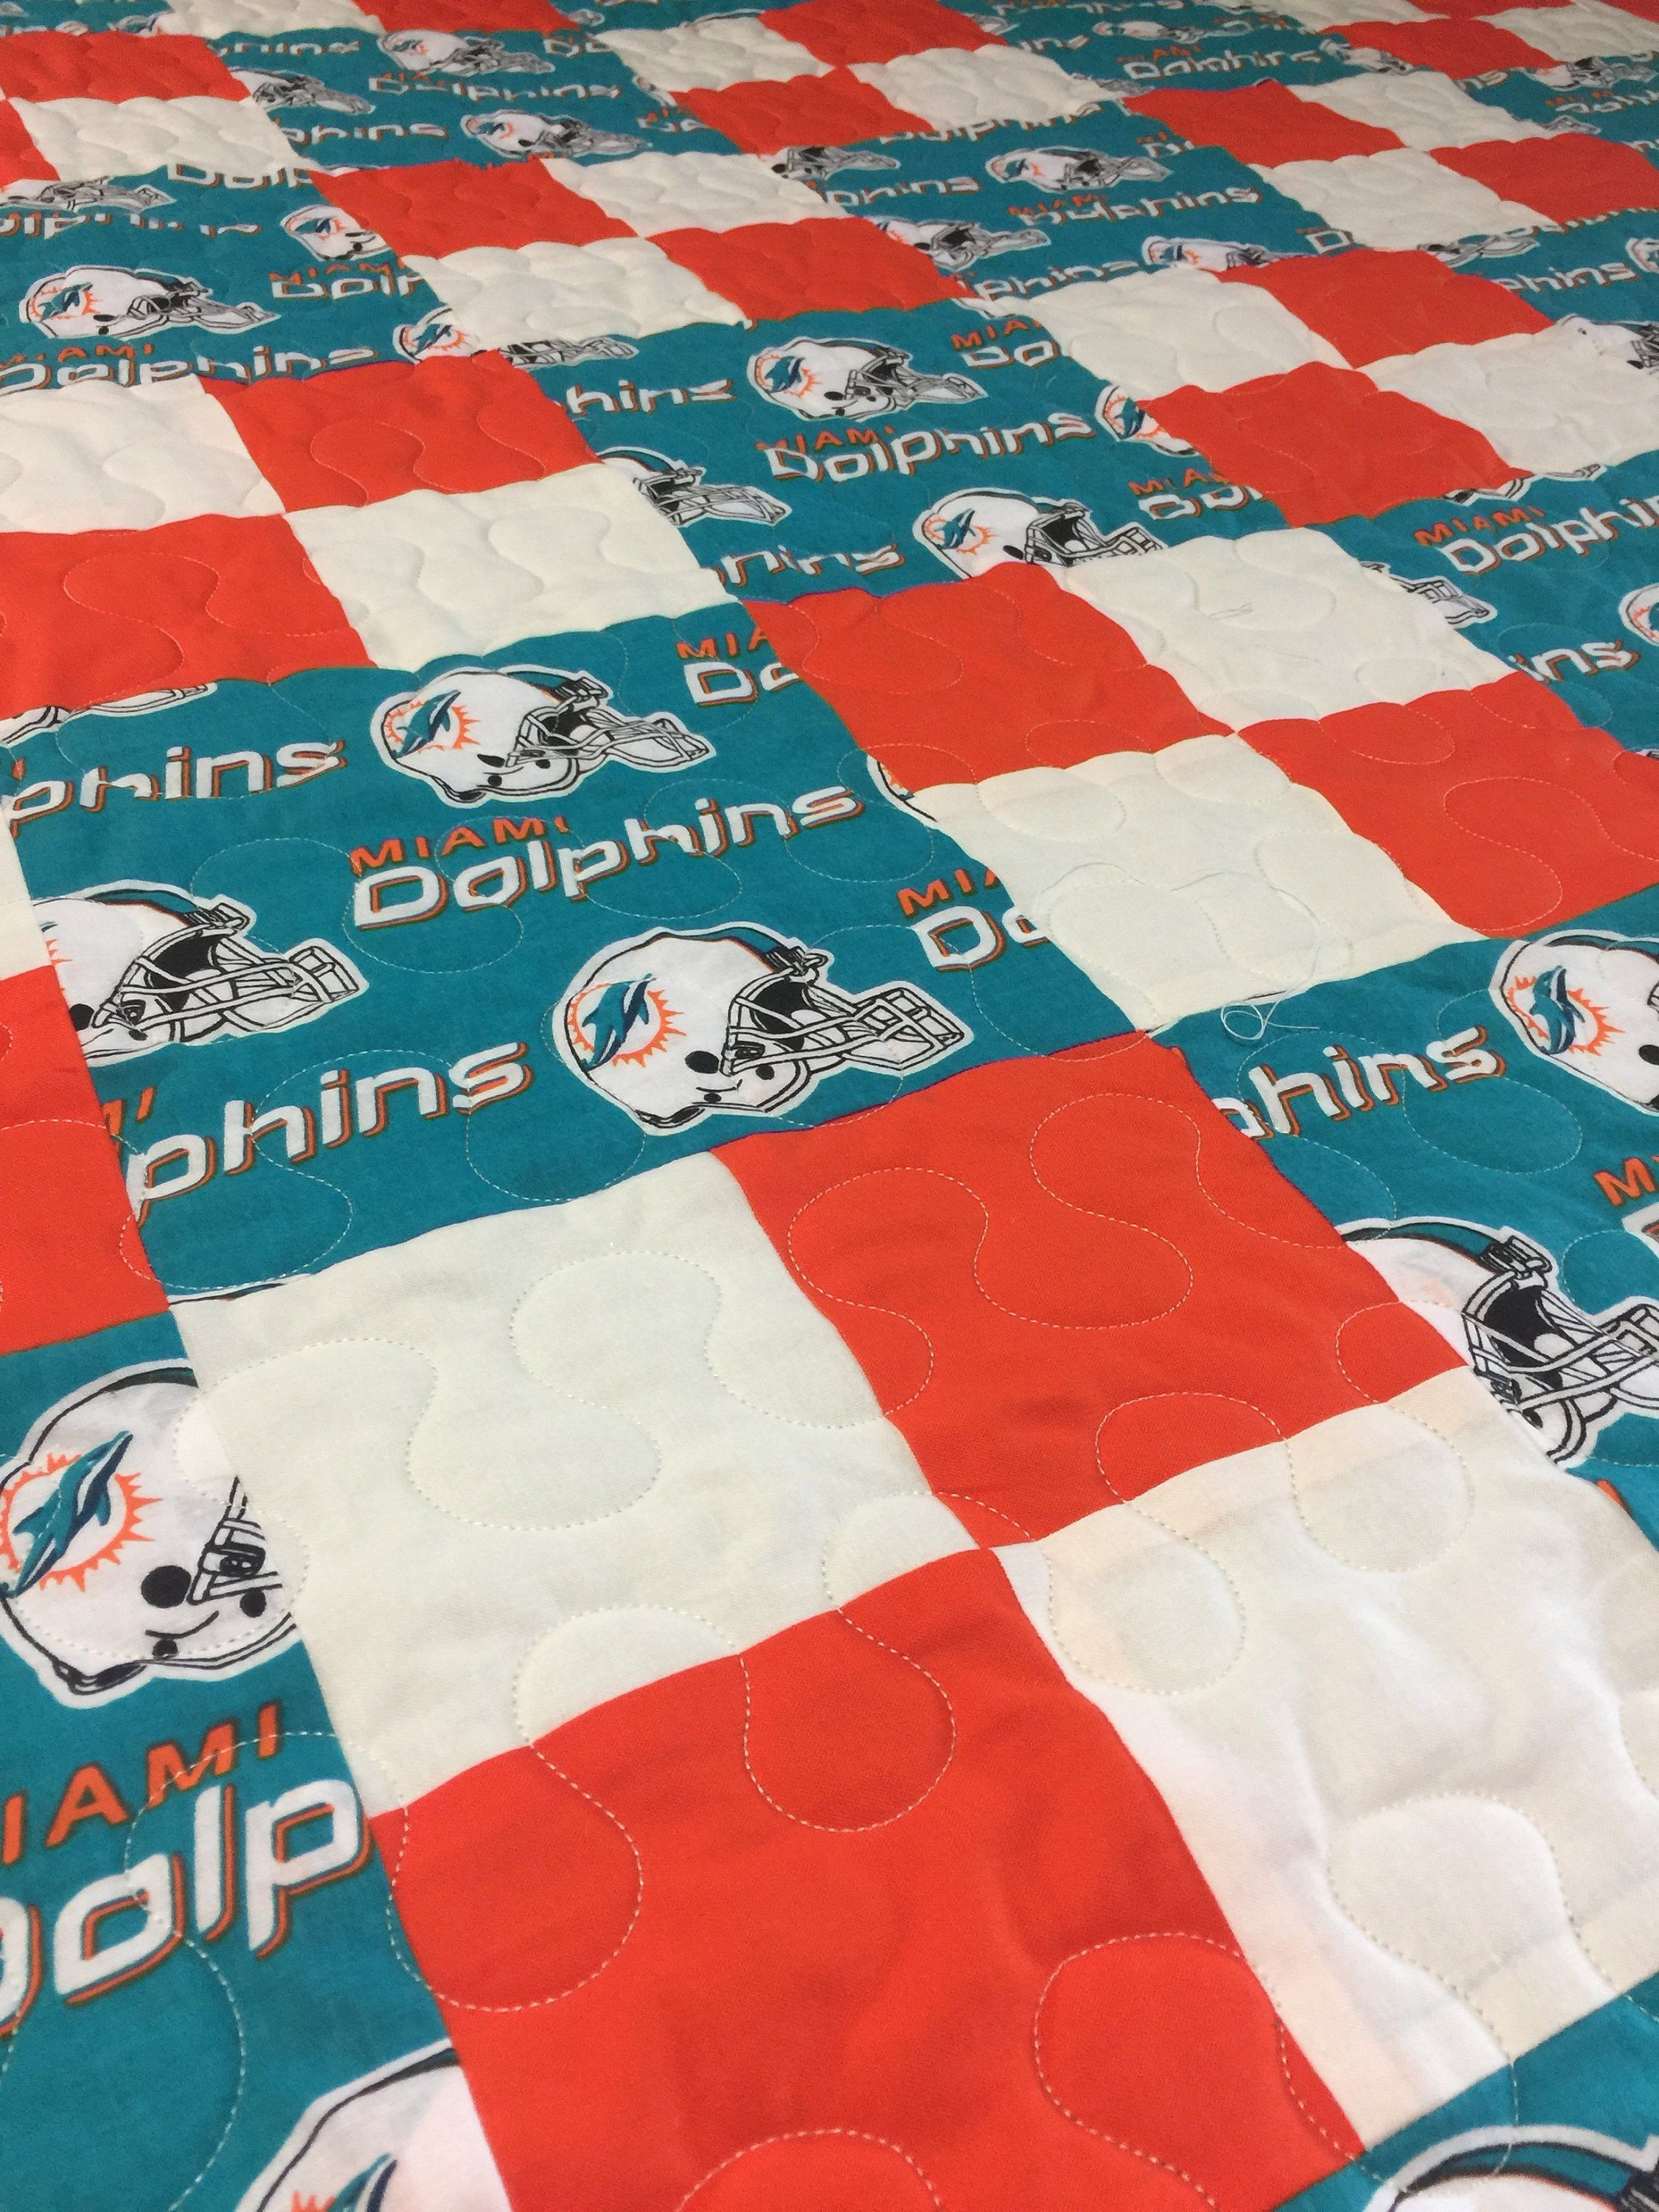 Miami Dolphins Handmade Quilt Quilts Handmade Quilts Handmade